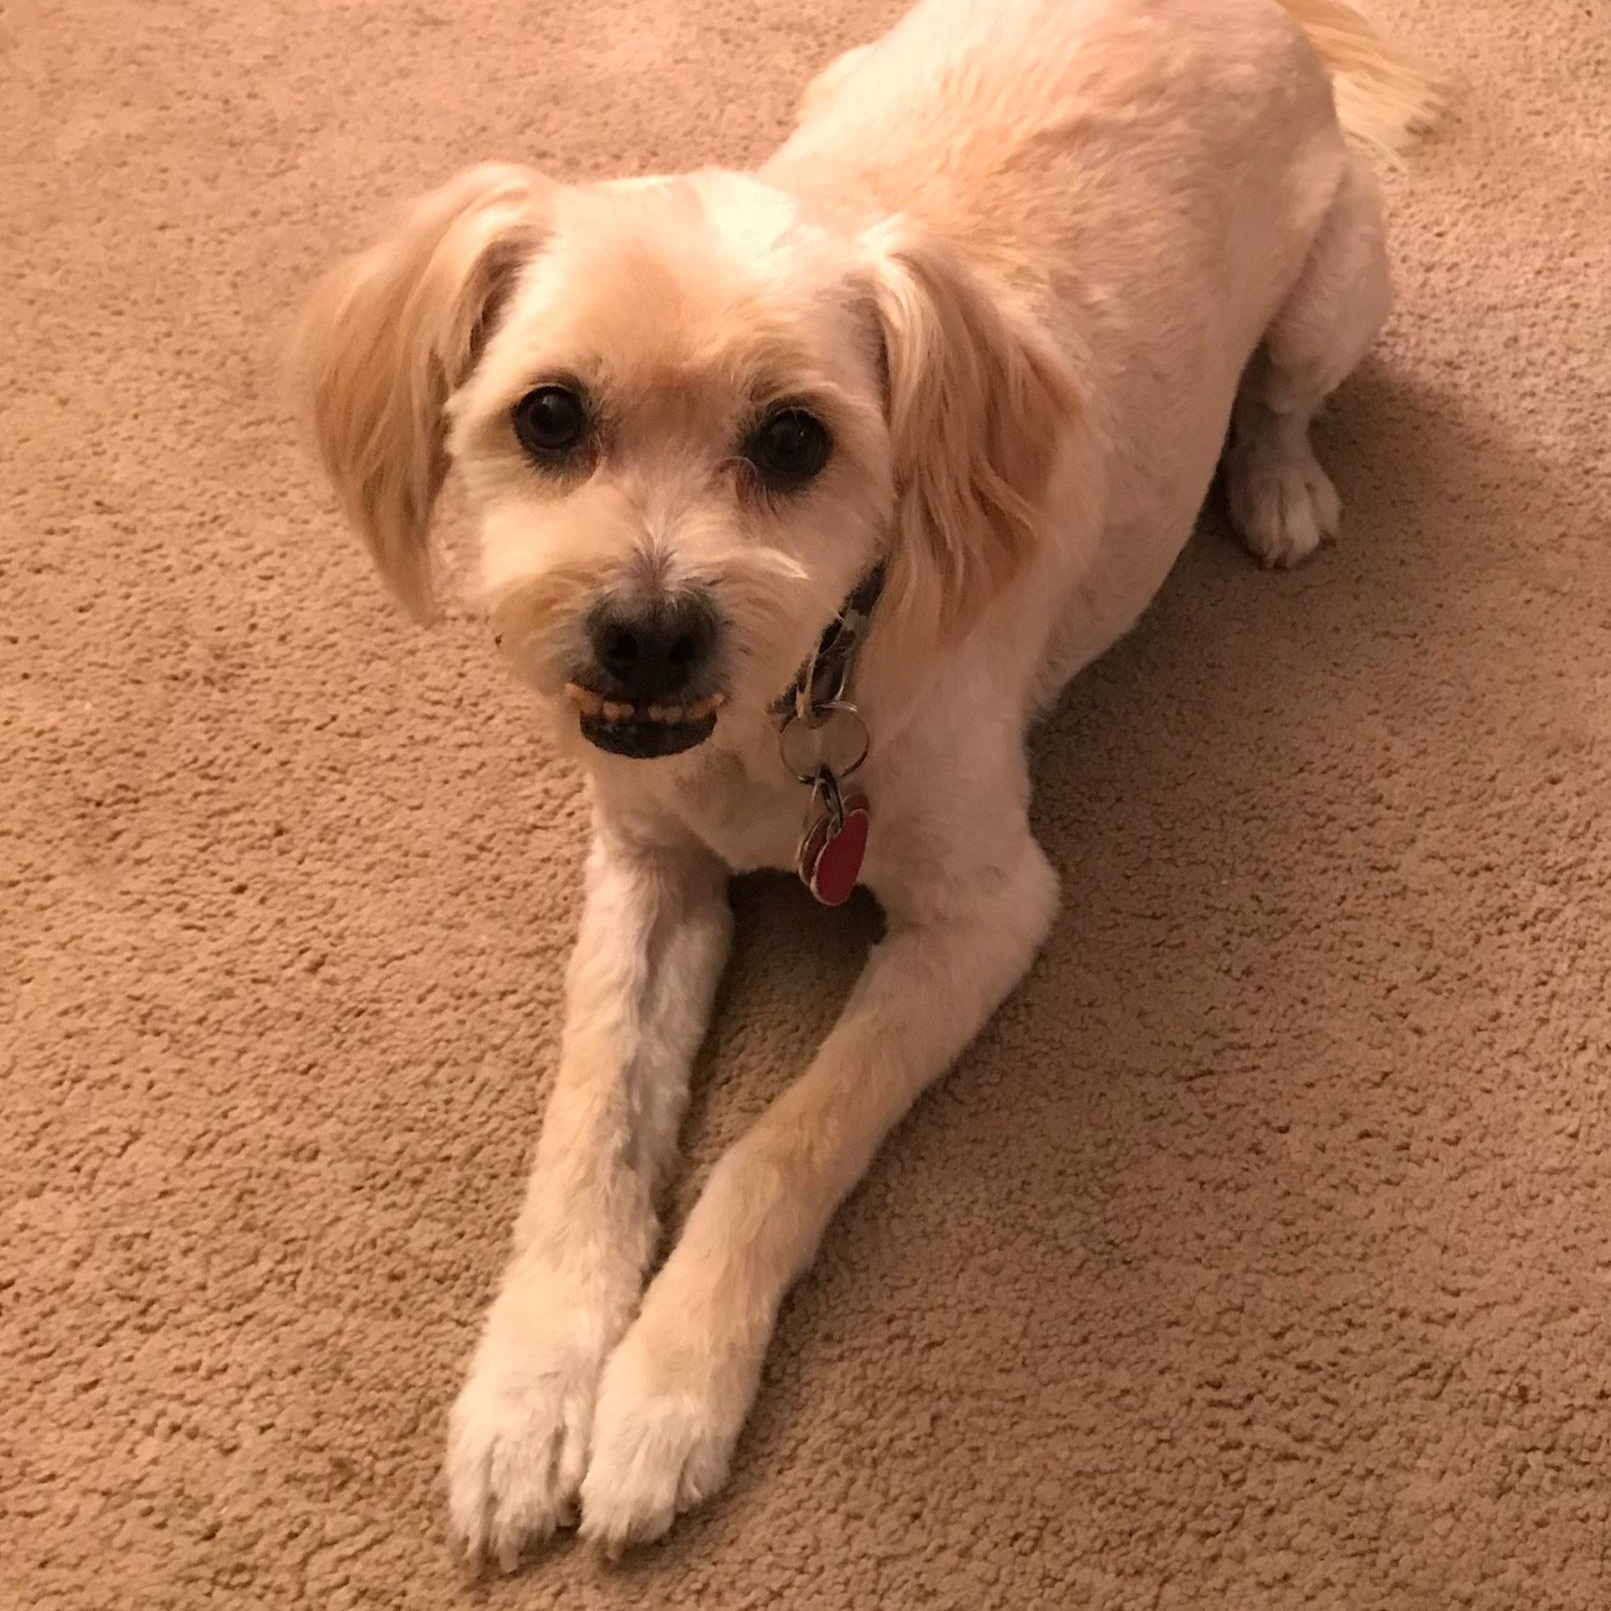 16. Kaiser - This is Kaiser. He is a Shih-Poo and will be turning 10 in April. Kaiser once got into an unopened box of carnation instant breakfast and when I got home there were chocolate powder spots everywhere on the carpet.